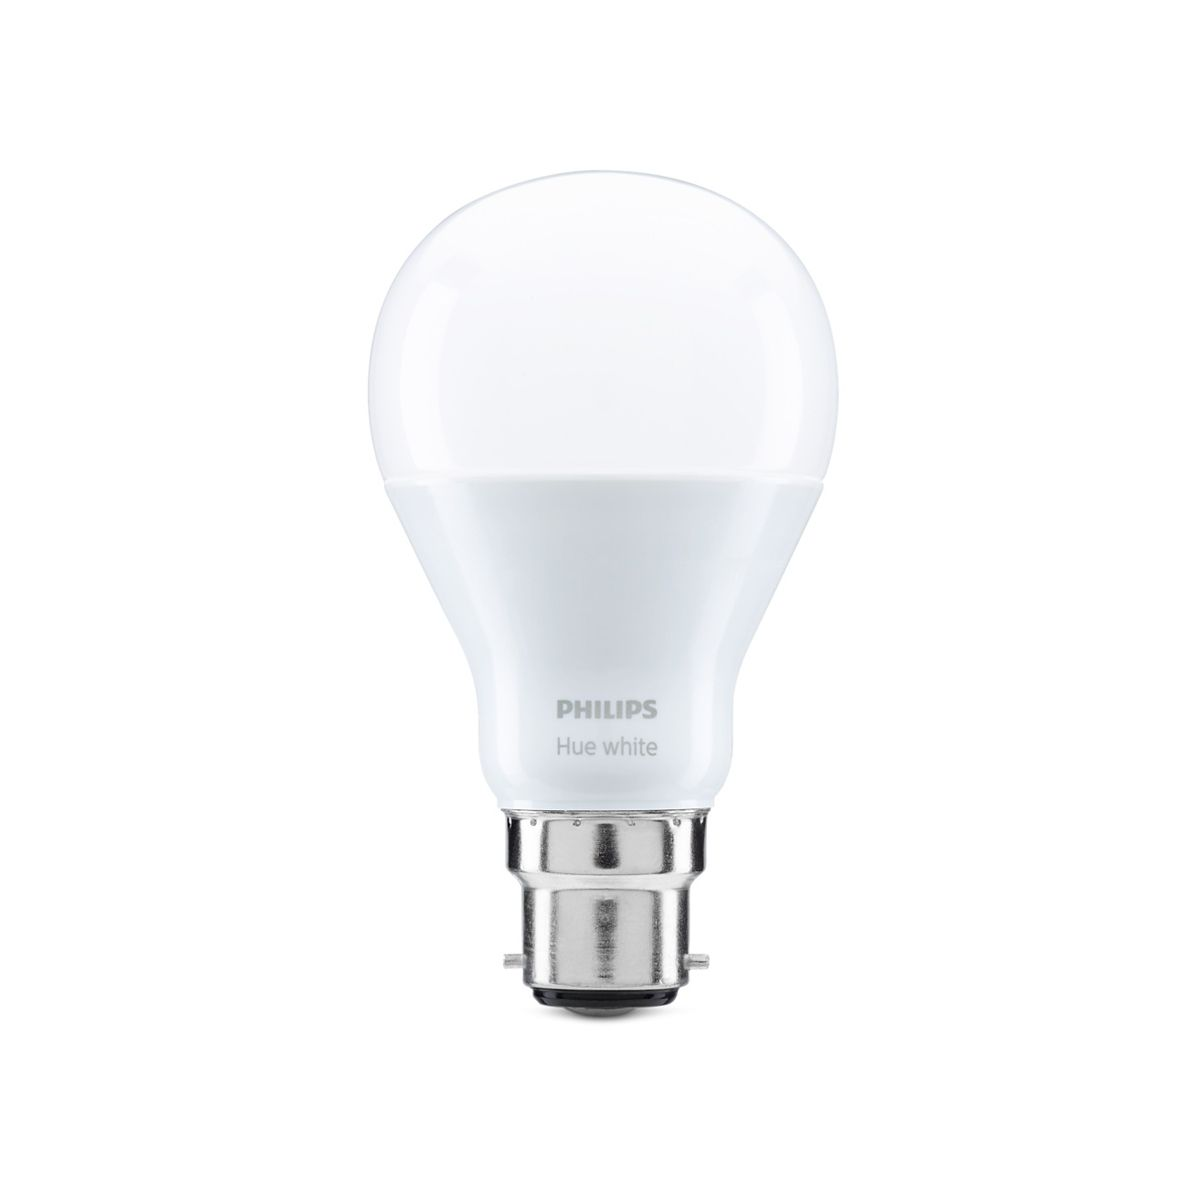 Hue G10 Homekit Store Lighting